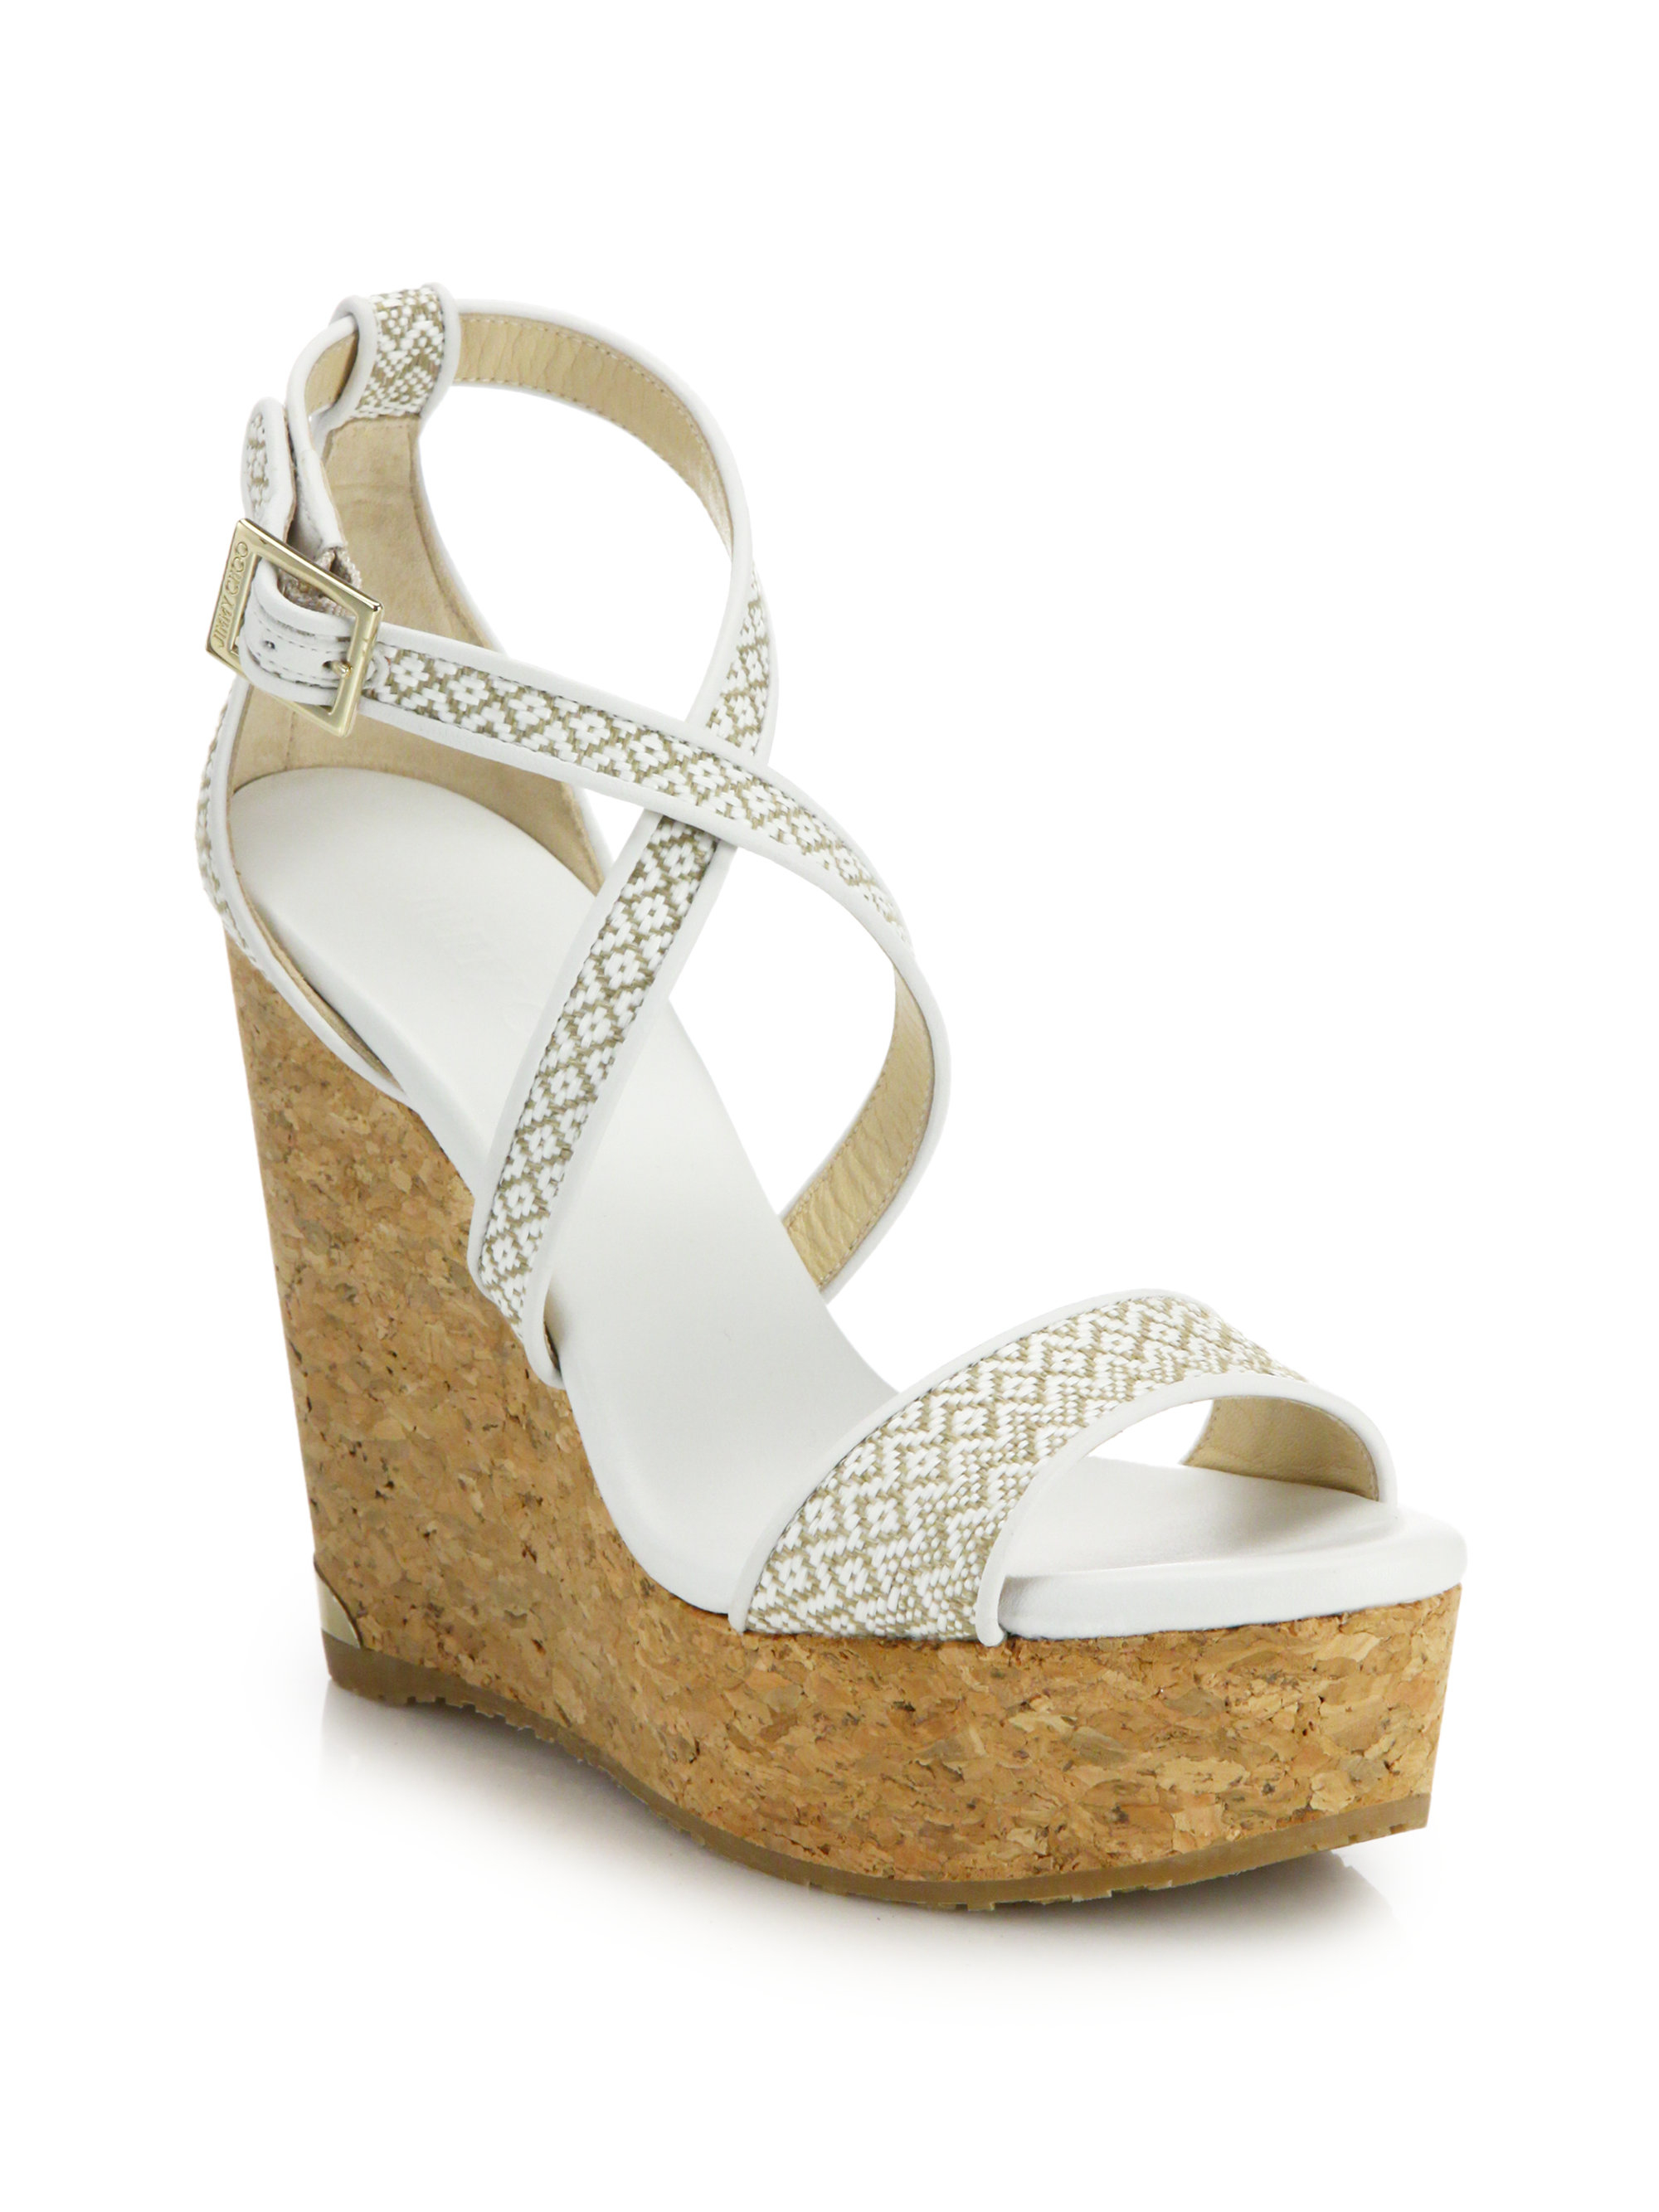 Jimmy Choo Woven Platform Wedge Sandals low price sale online cheap sale visa payment cheap sale many kinds of cheap sale prices 1t7CCR03